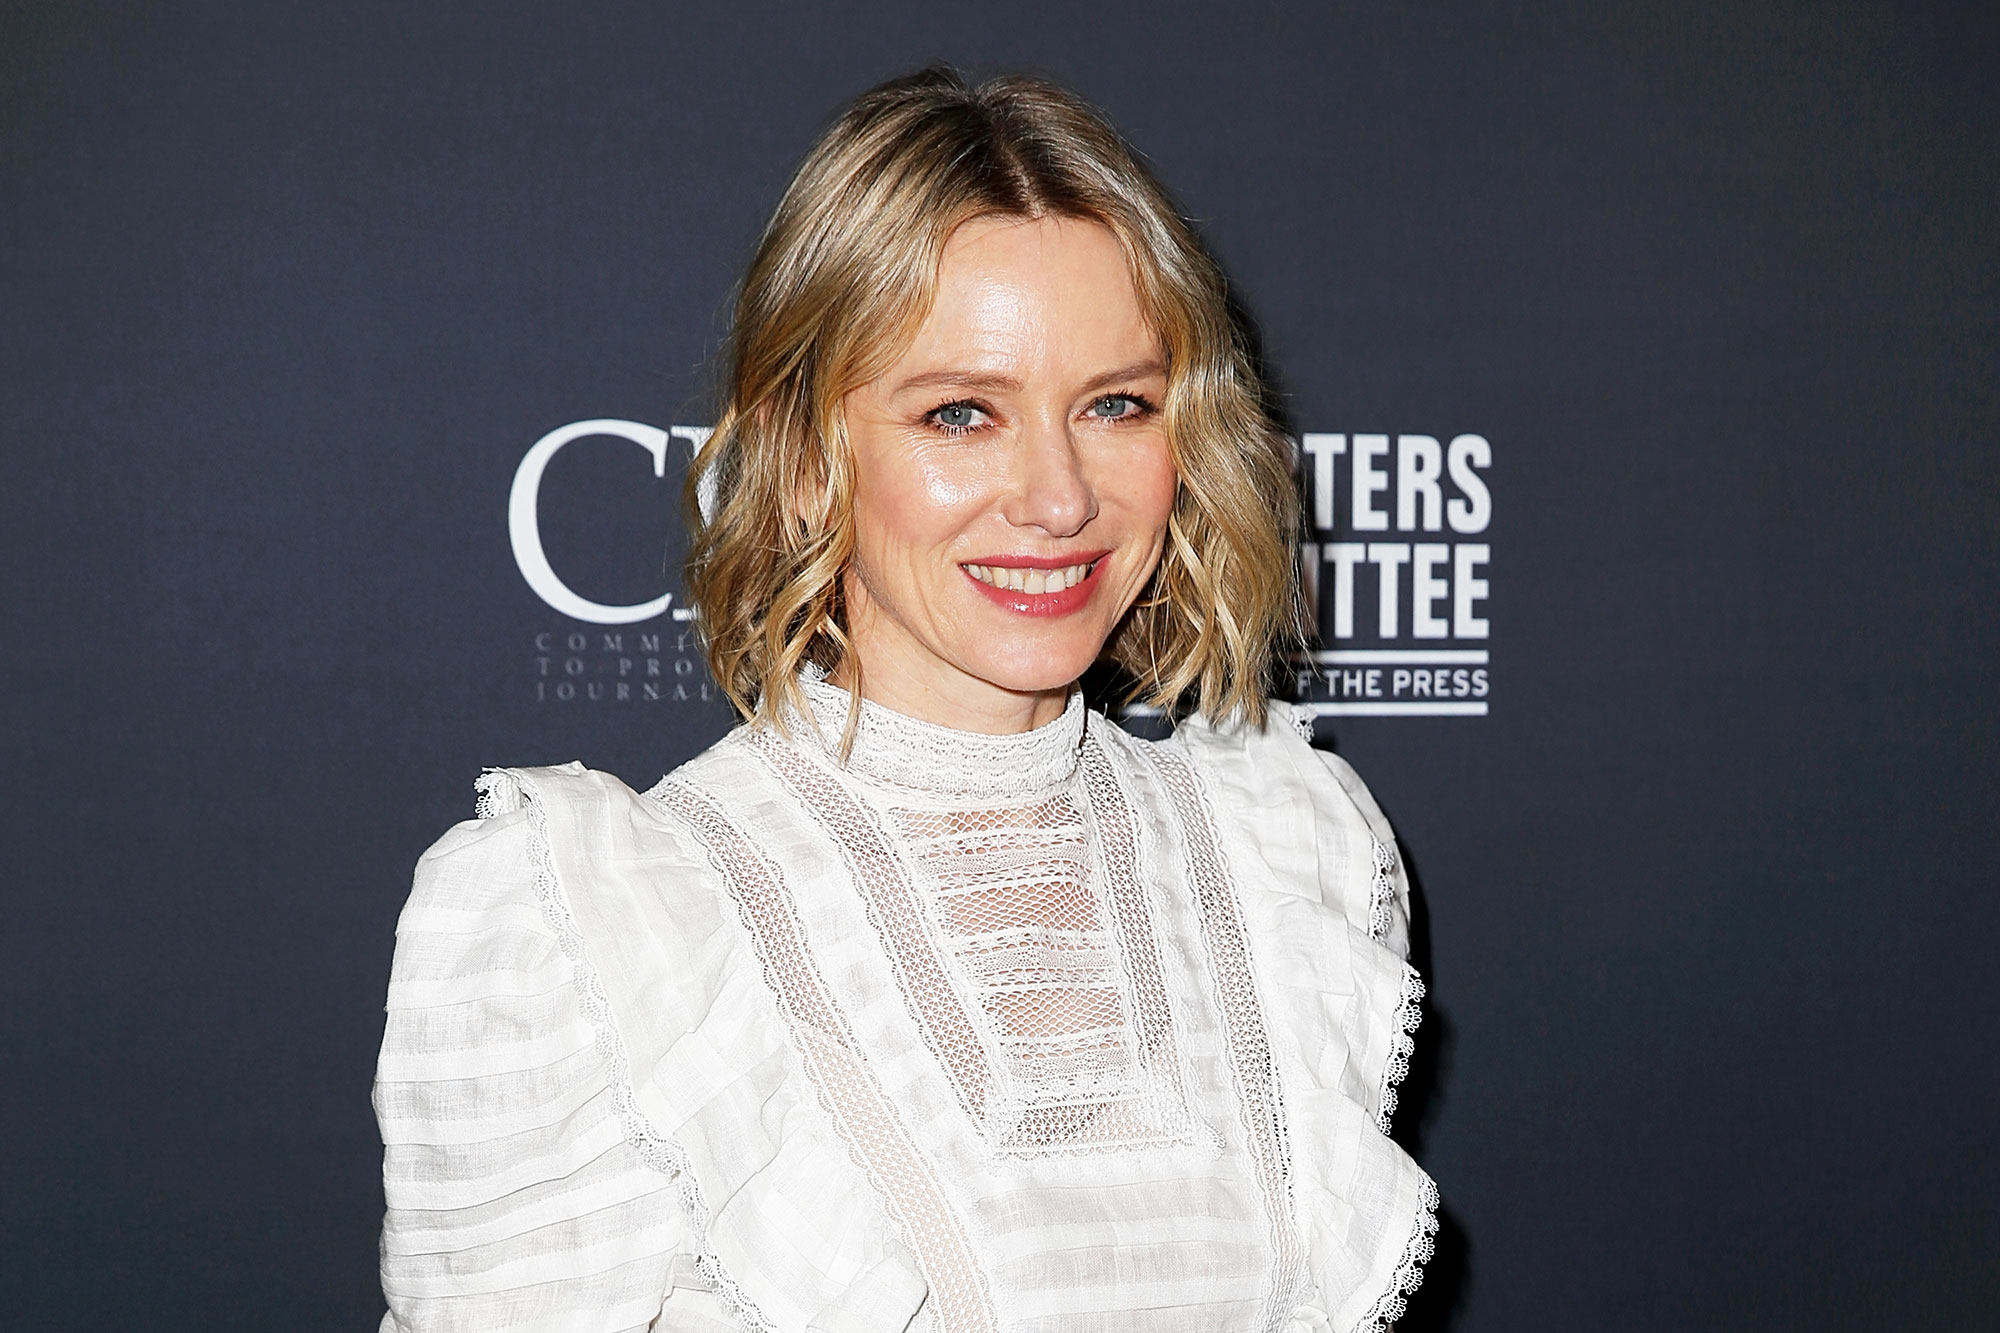 Naomi Watts skincare routine - Naomi Watts attends the The Hollywood Reporter's 9th Annual Most Powerful People In Media at The Pool on April 11, 2019 in New York City.